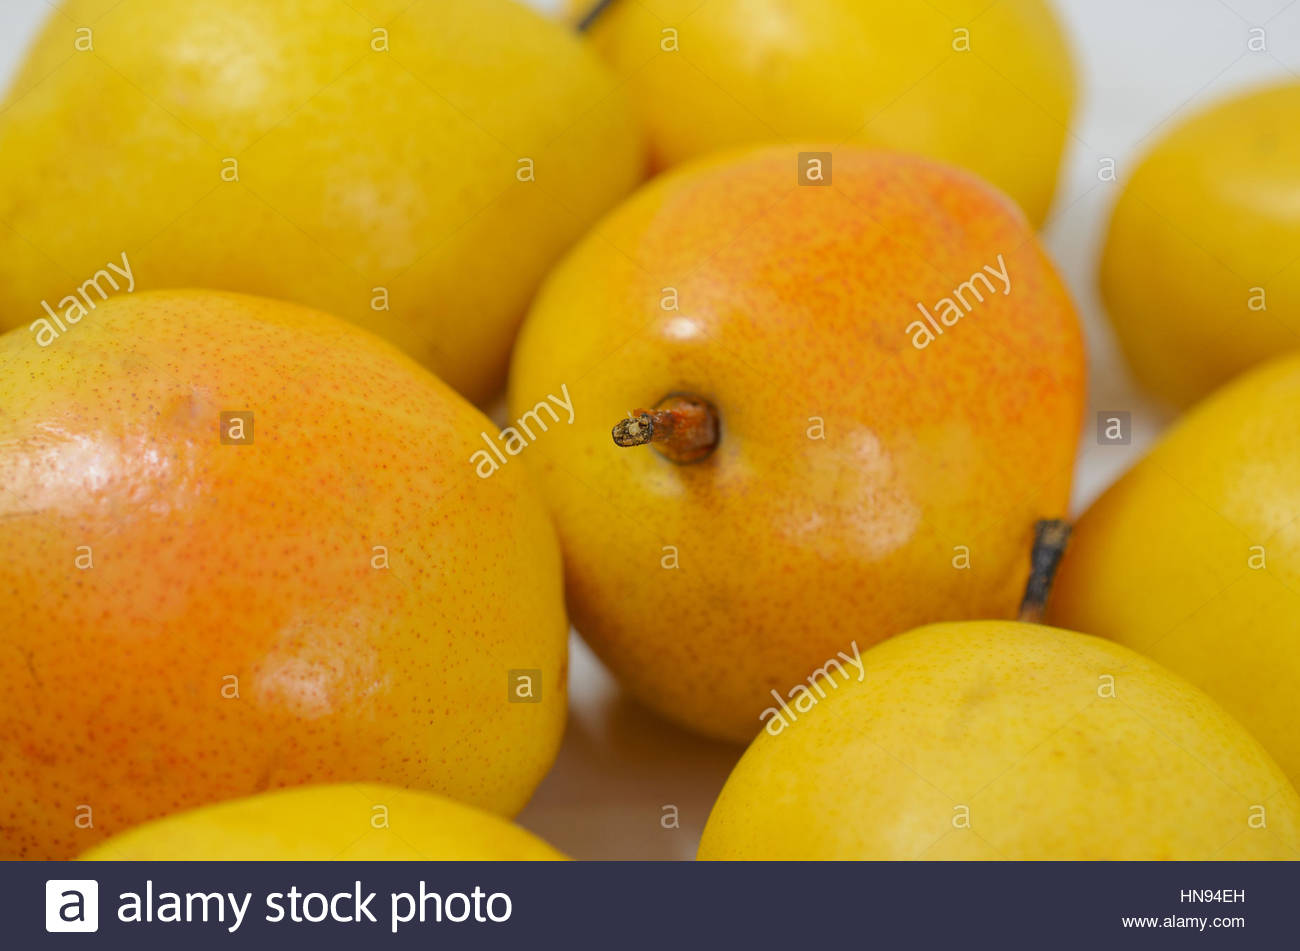 yellow pears on a white wooden background - Stock Image